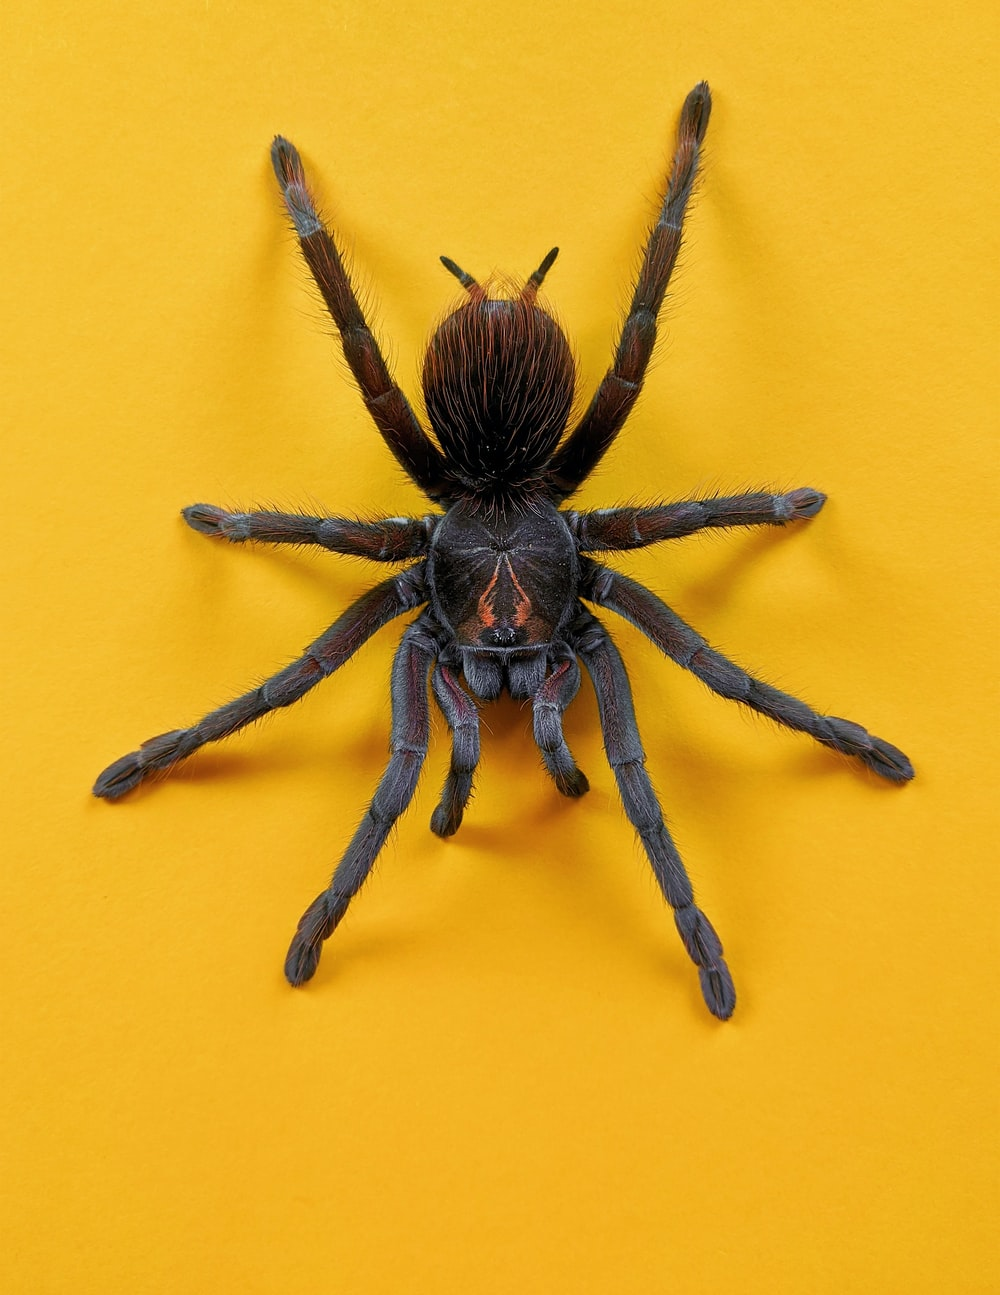 brown and black spider on yellow wall